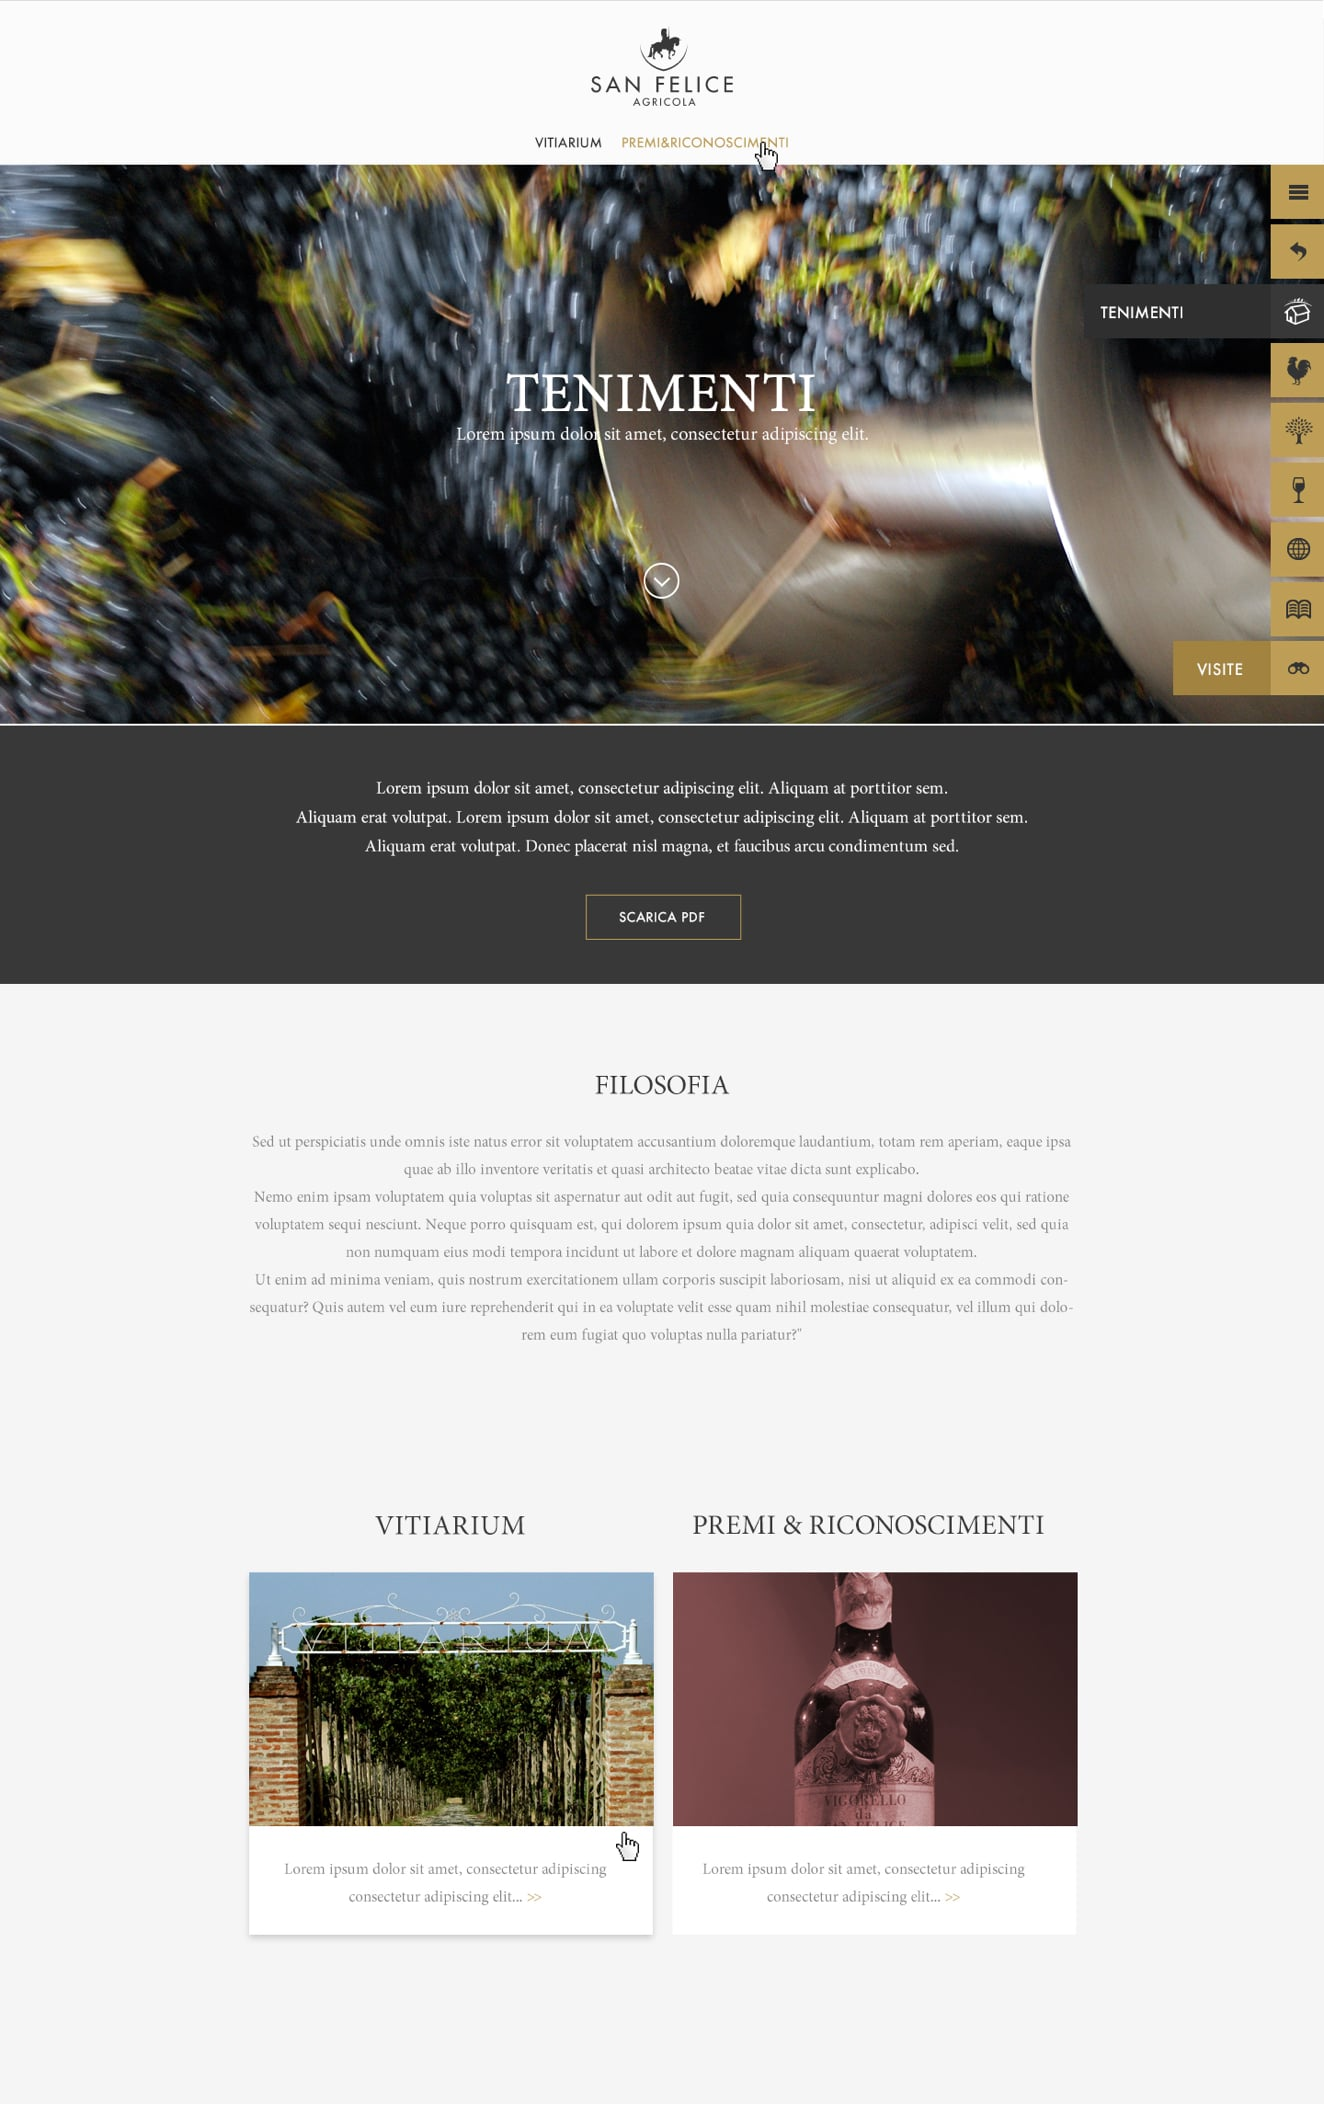 Luther Dsgn developed the hospitality website of Borgo San Felice Hotel